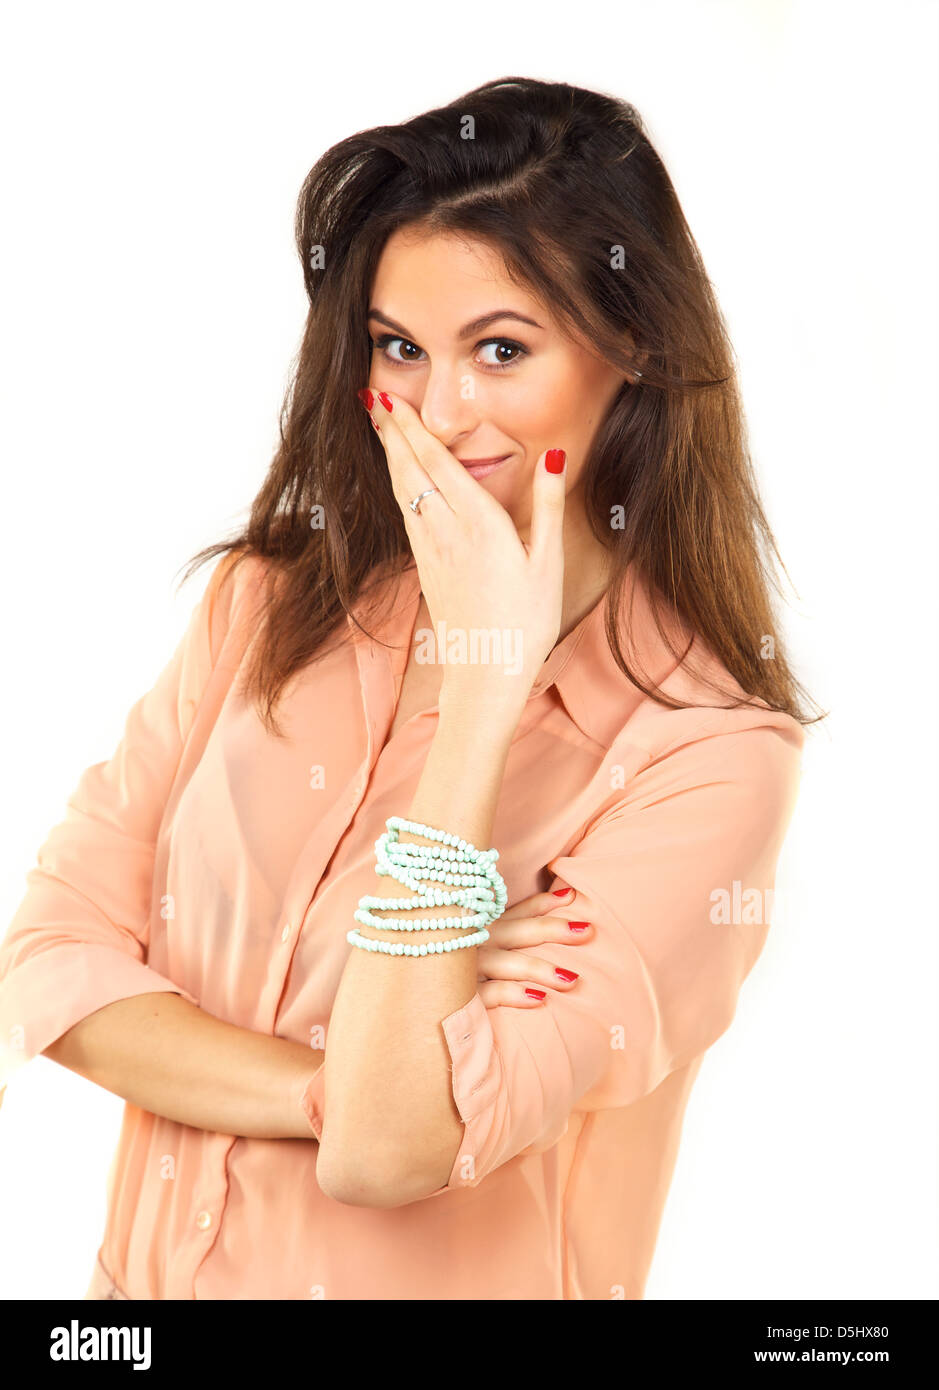 Portrait of a beautiful woman in a studio covering her mouth with her hand - Stock Image